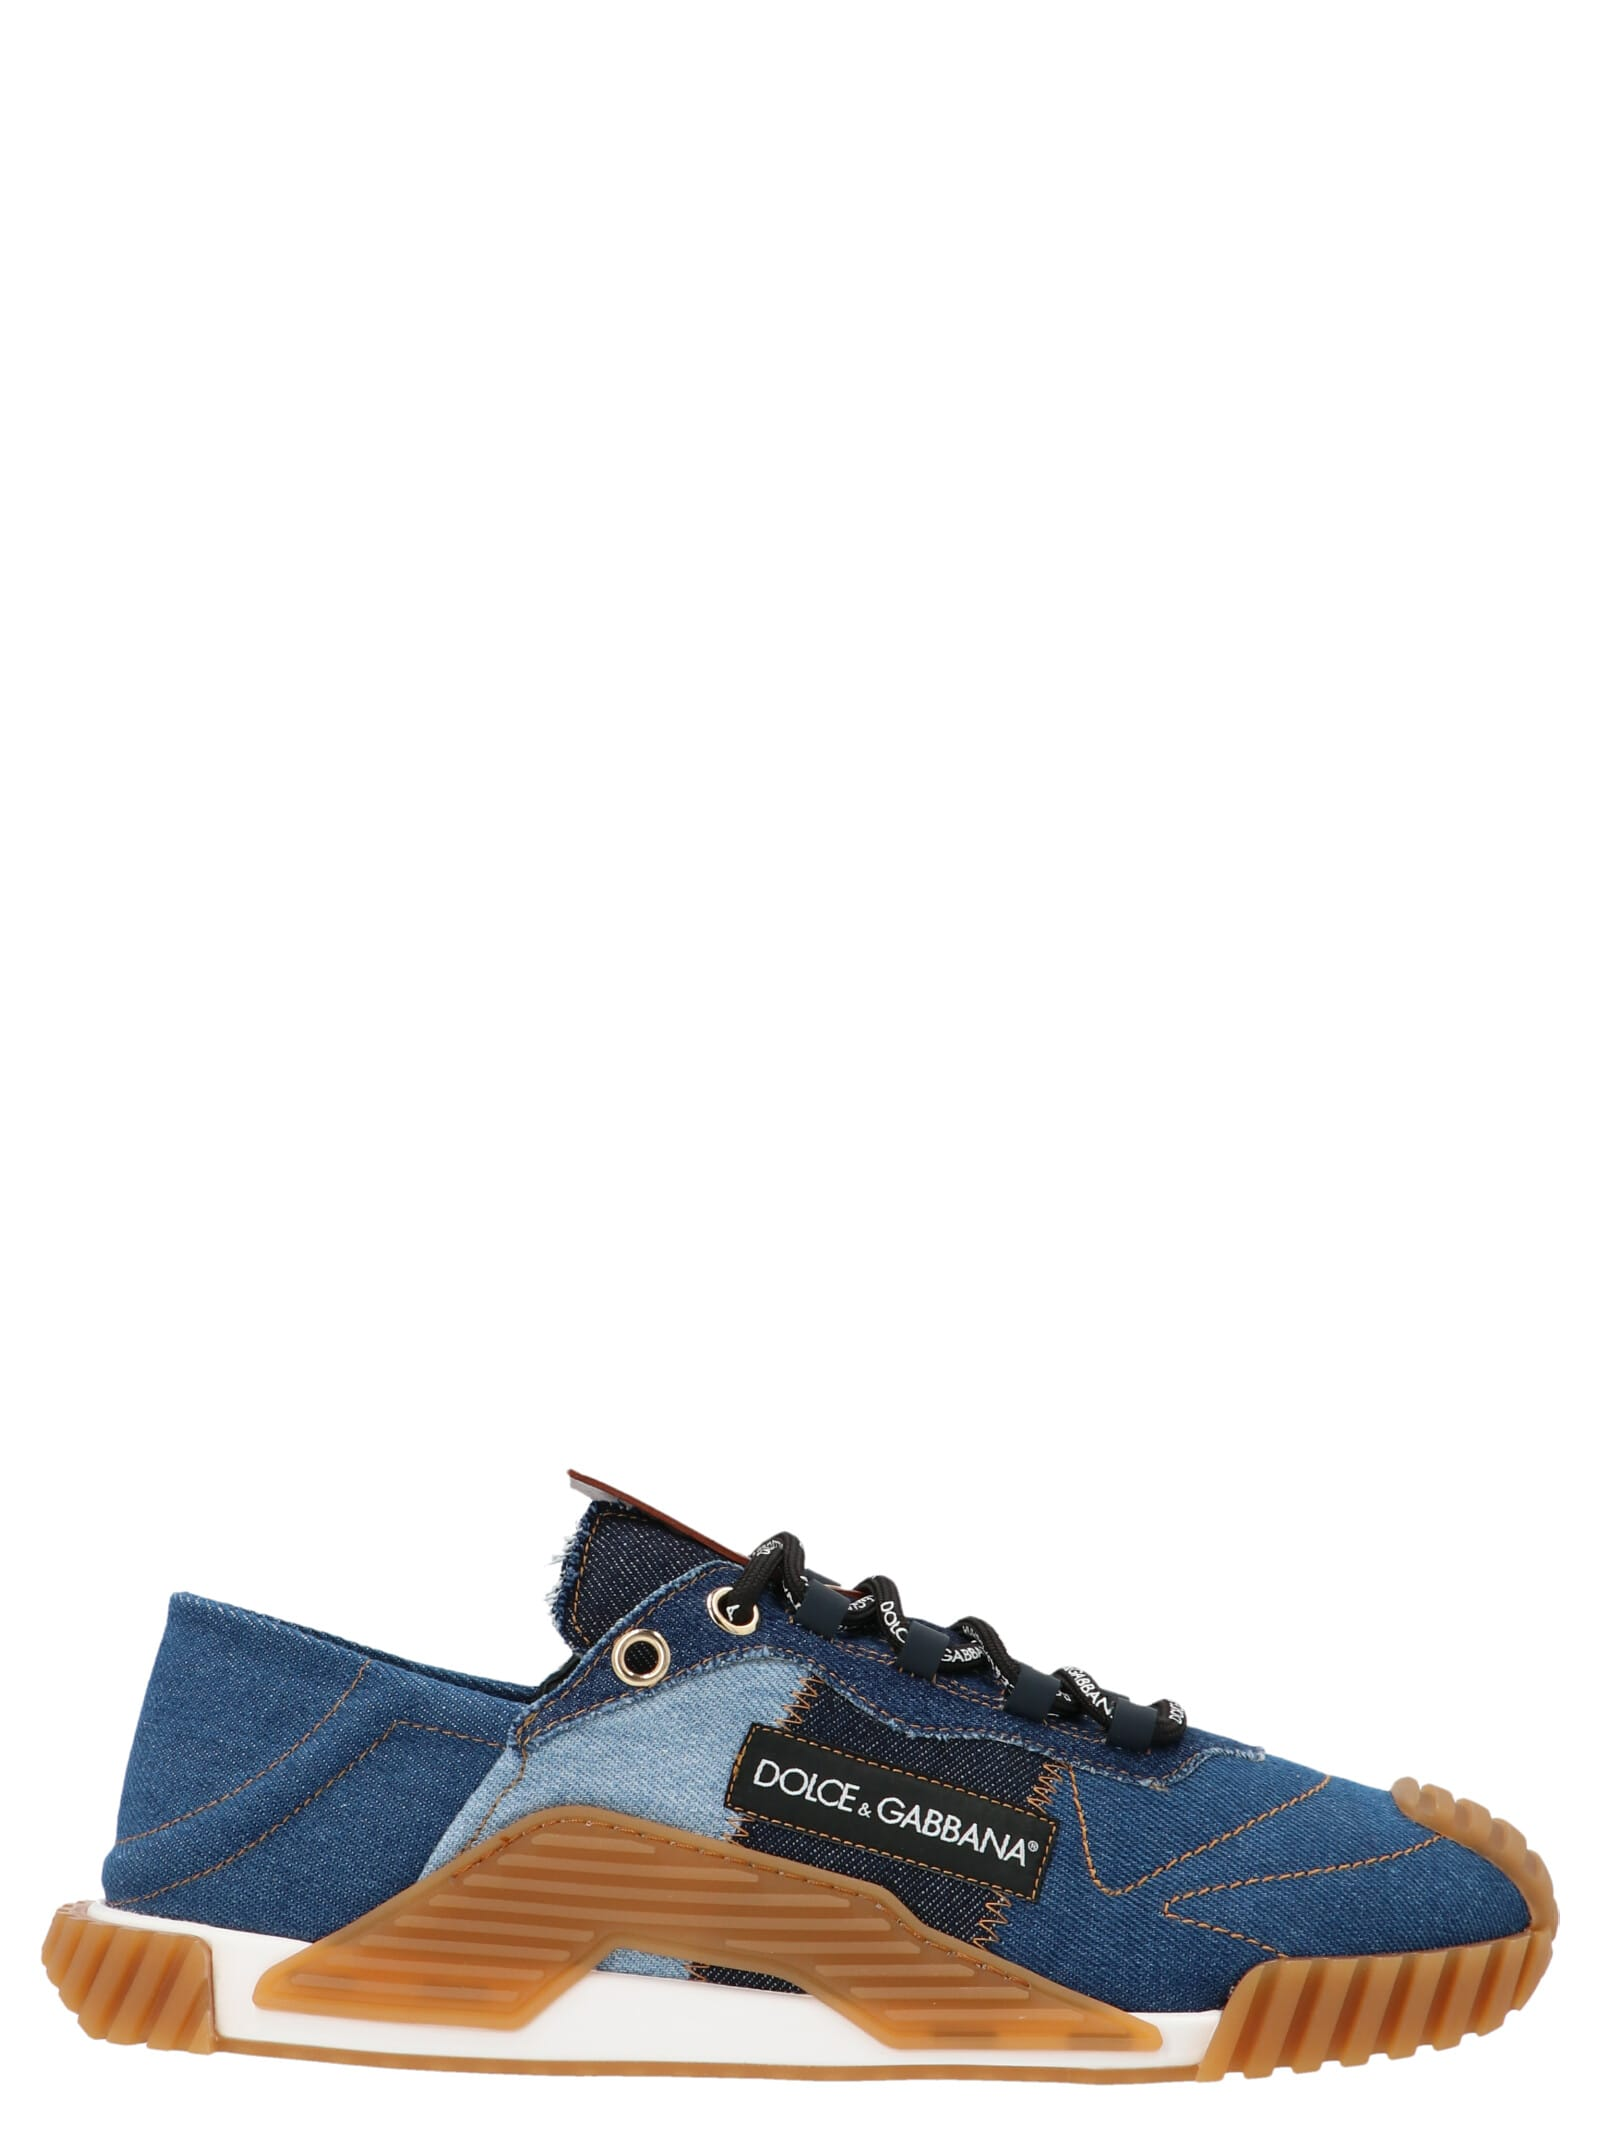 Dolce & Gabbana Shoes In Blue